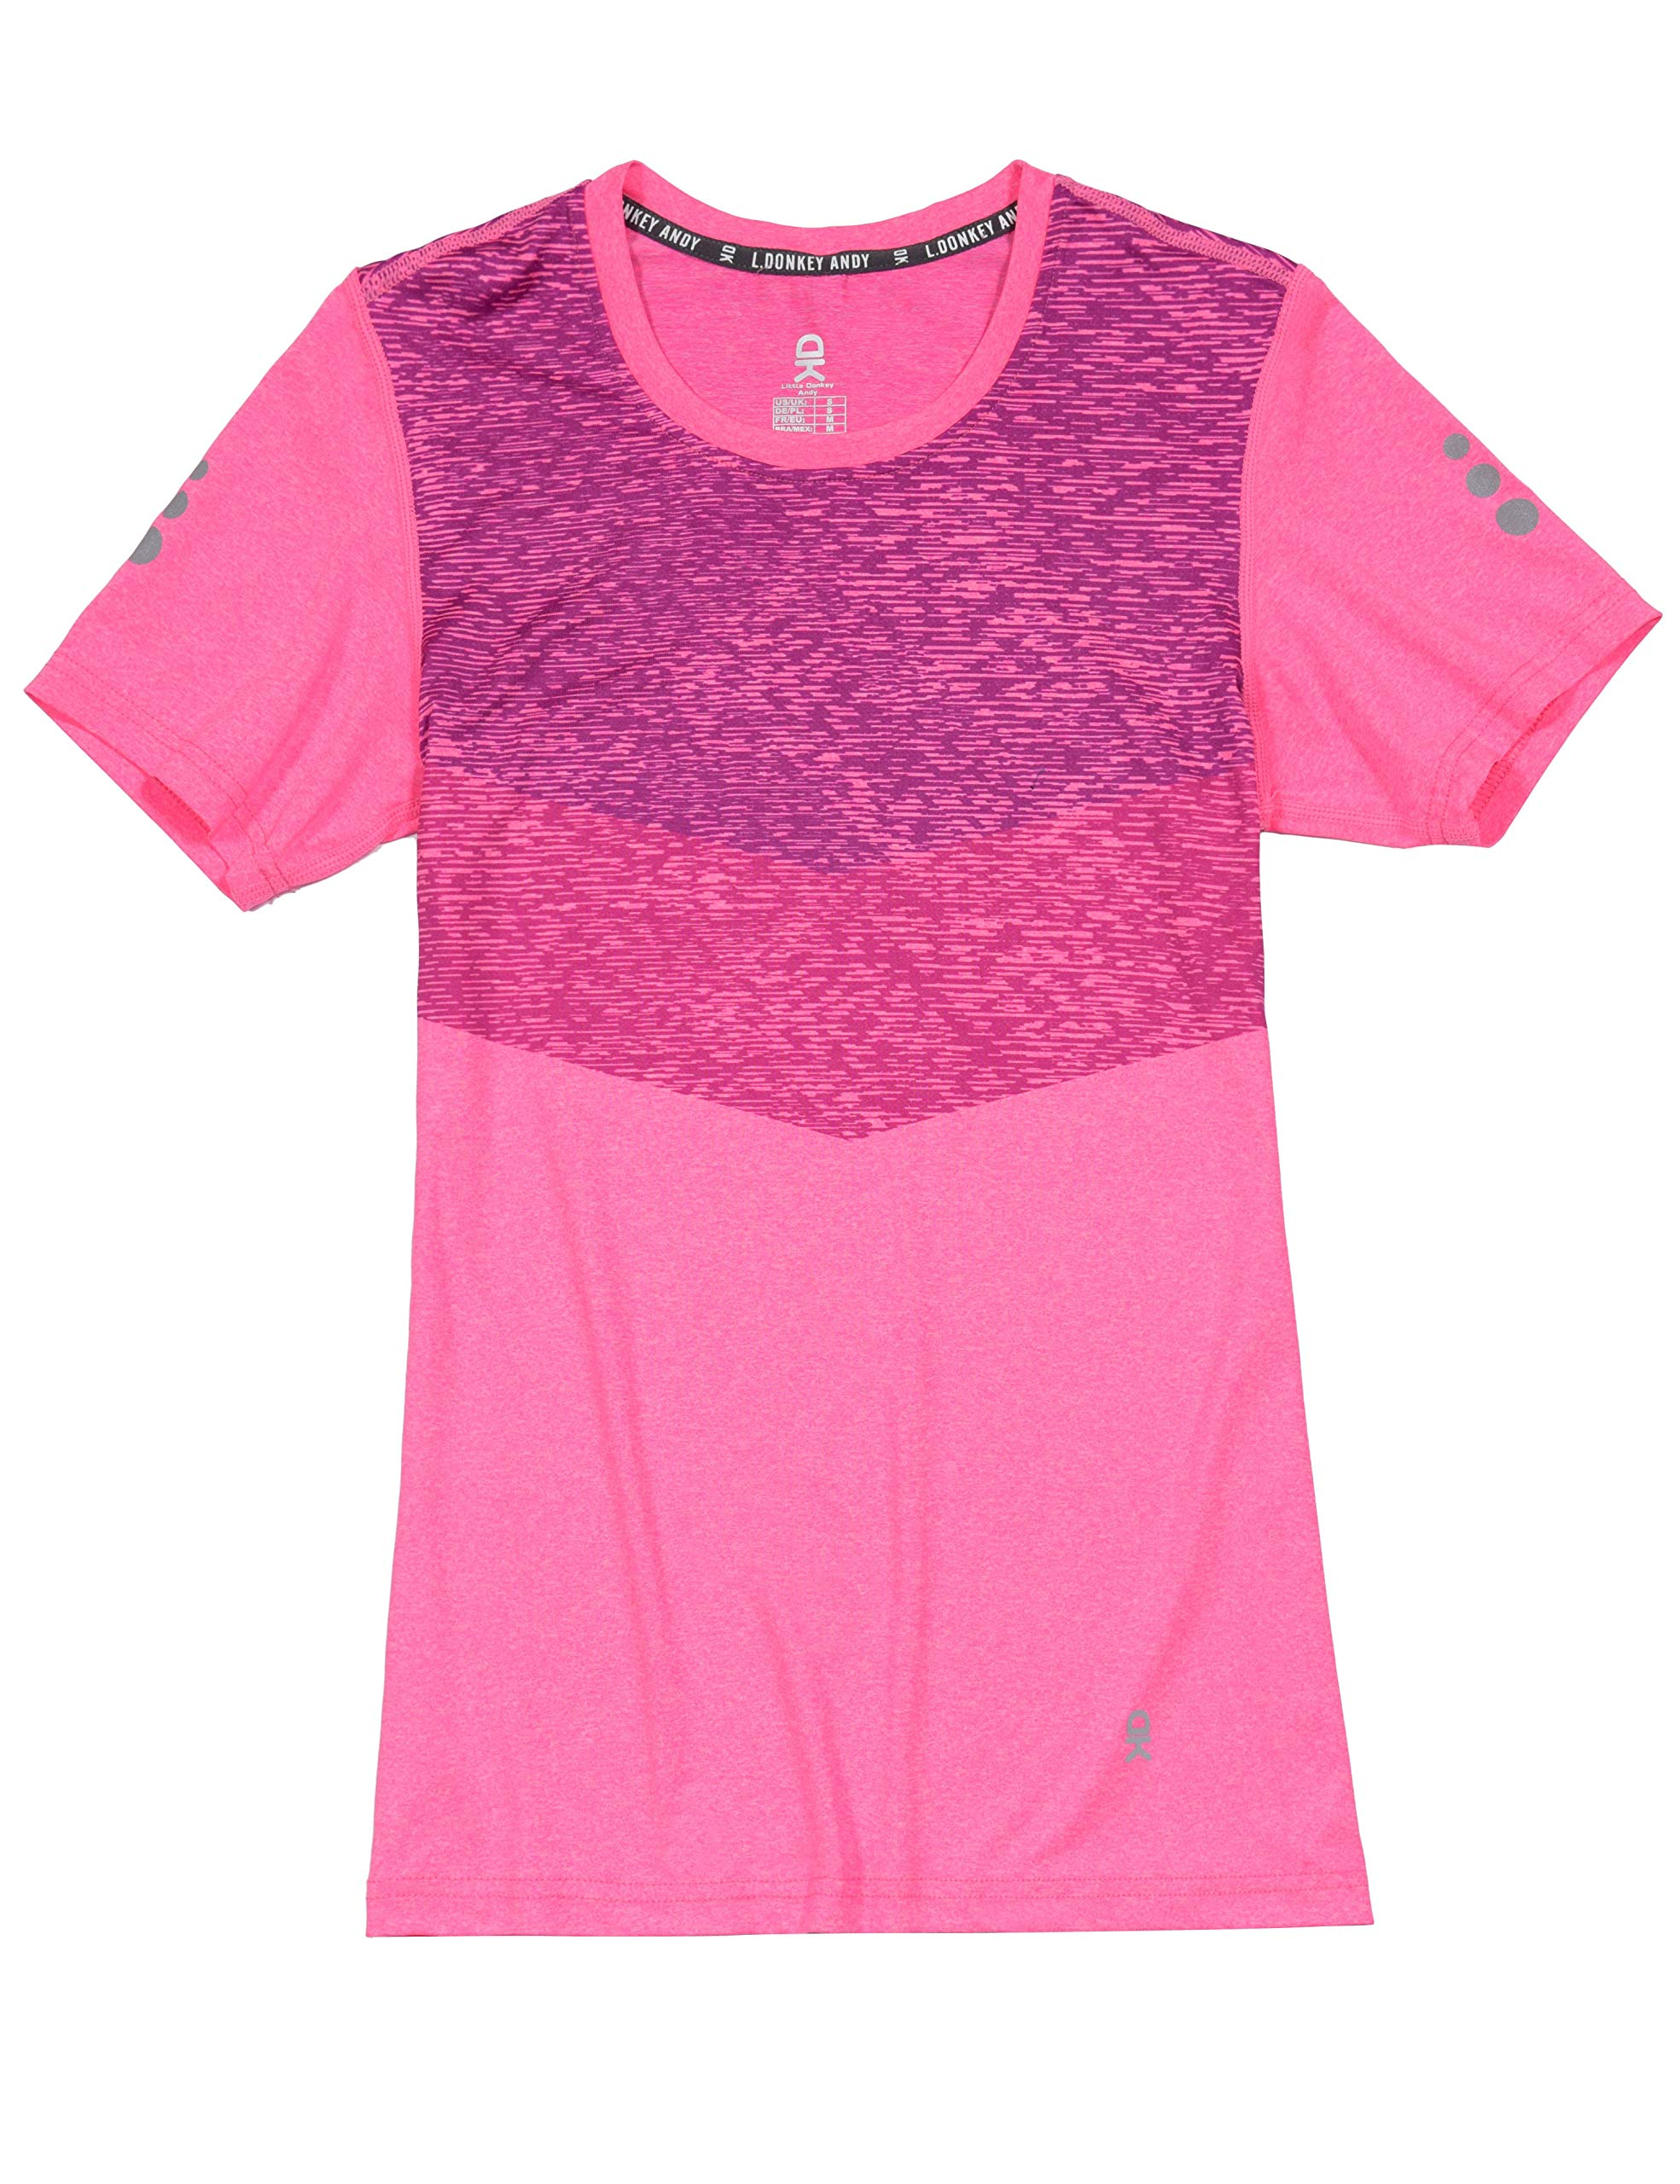 Little Donkey Andy Women's Quick Dry Sweat Wicking Short Sleeve T-Shirt Sun Protection Athletic Workout Running Hiking Tee